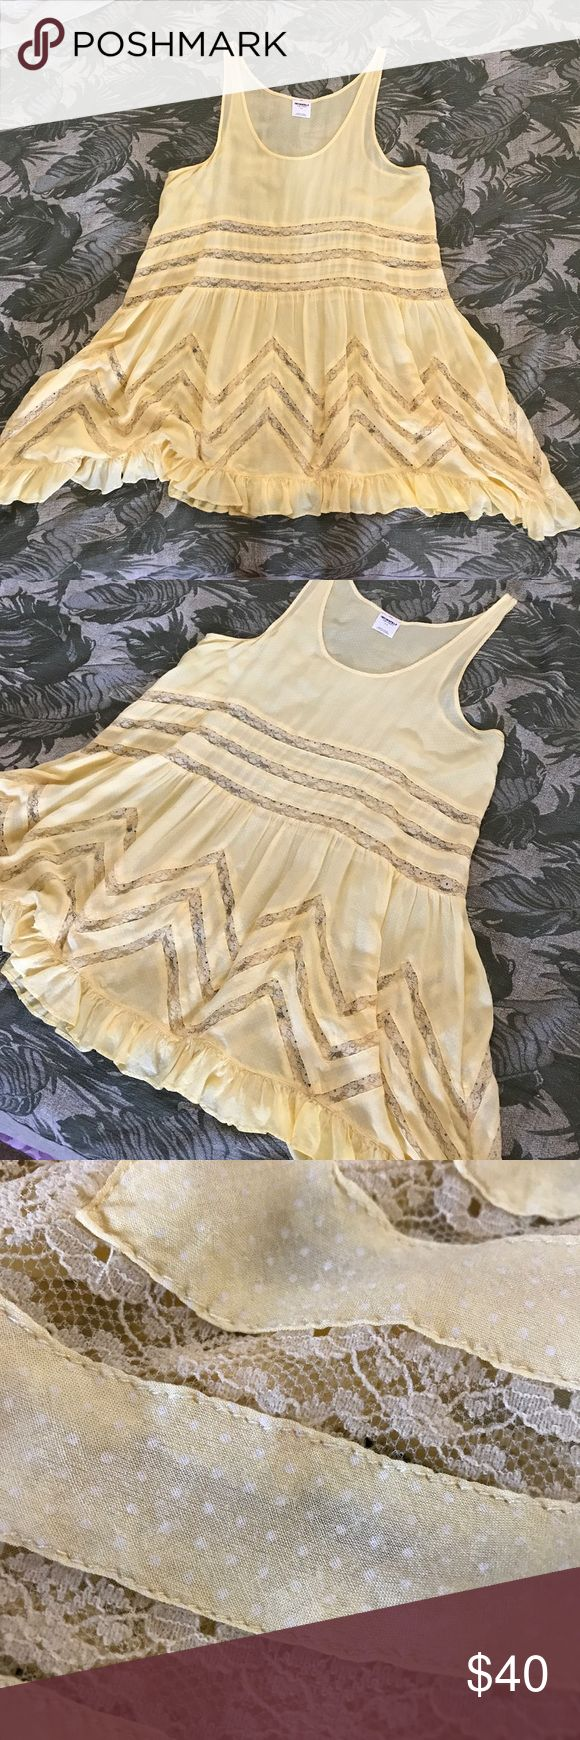 Free People Yellow Trapeze Slip Dress Mini Polka Free People Yellow Trapeze Slip Dress Mini Polka Size Small great essential! Free People Dresses Mini